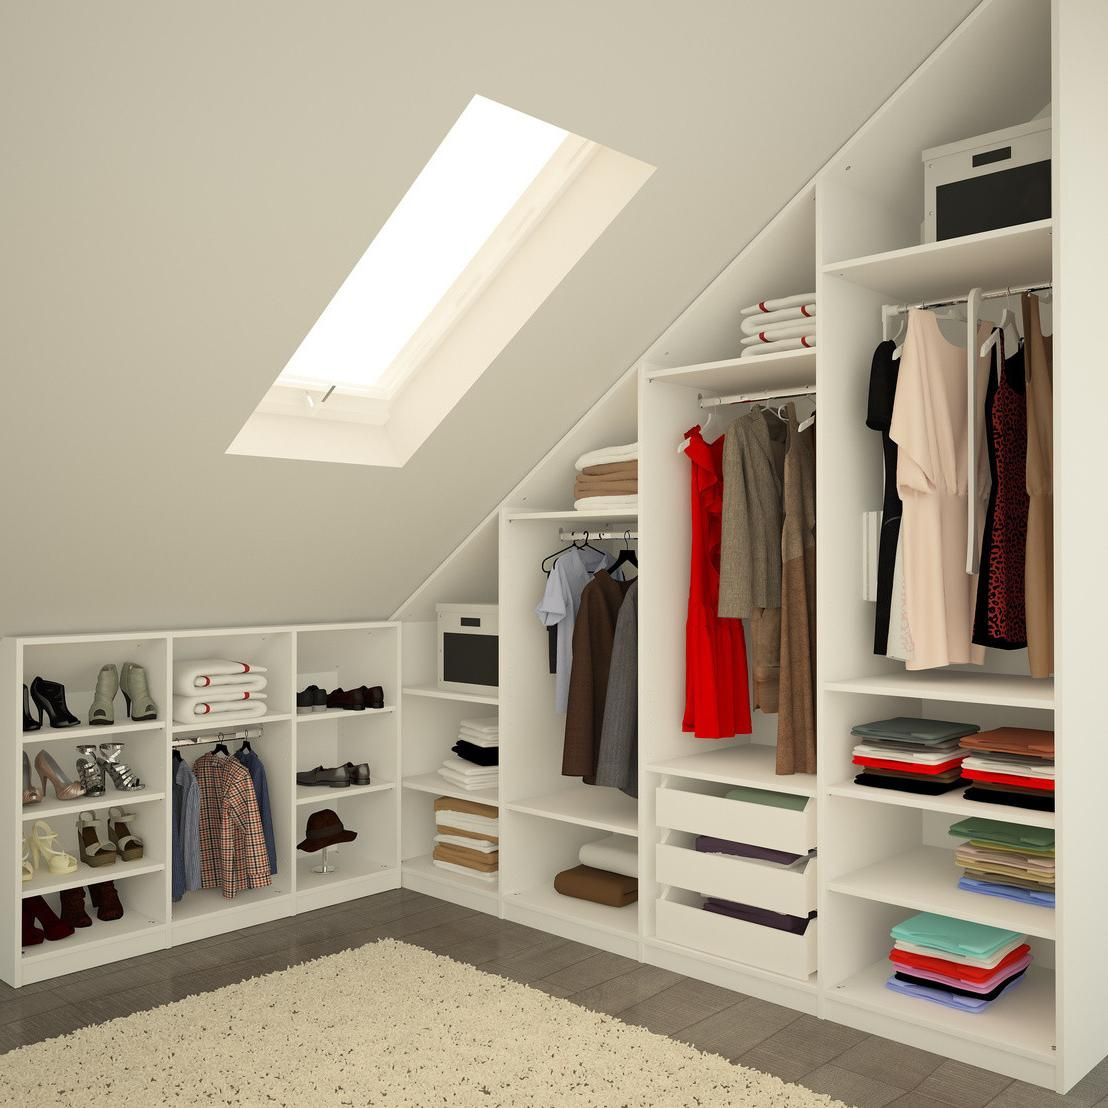 Loft Closet Ideas Dressing Room.attic  Google Search  Dressing Room  Pinterest